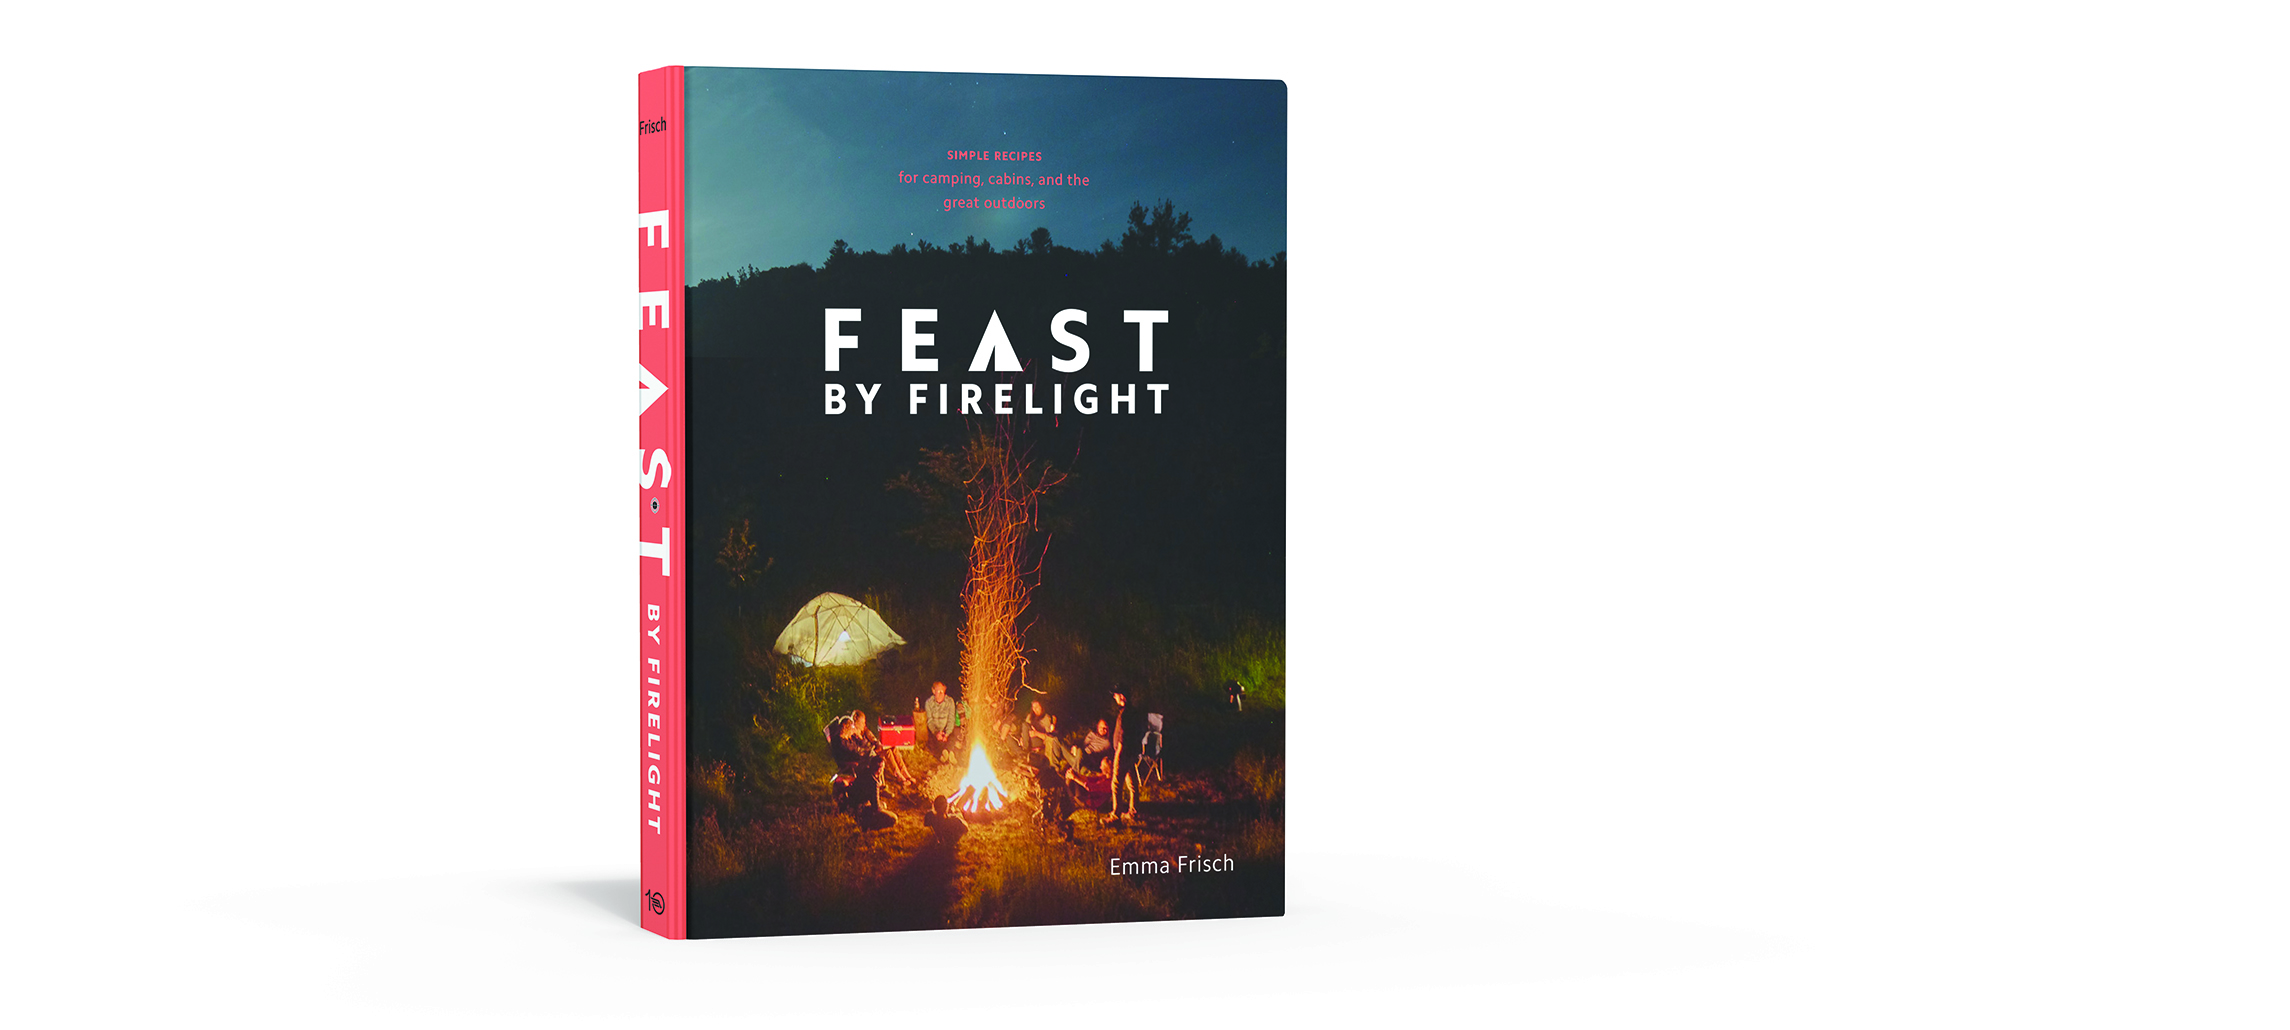 3d Book Cover_Feast by Firelight small.jpg